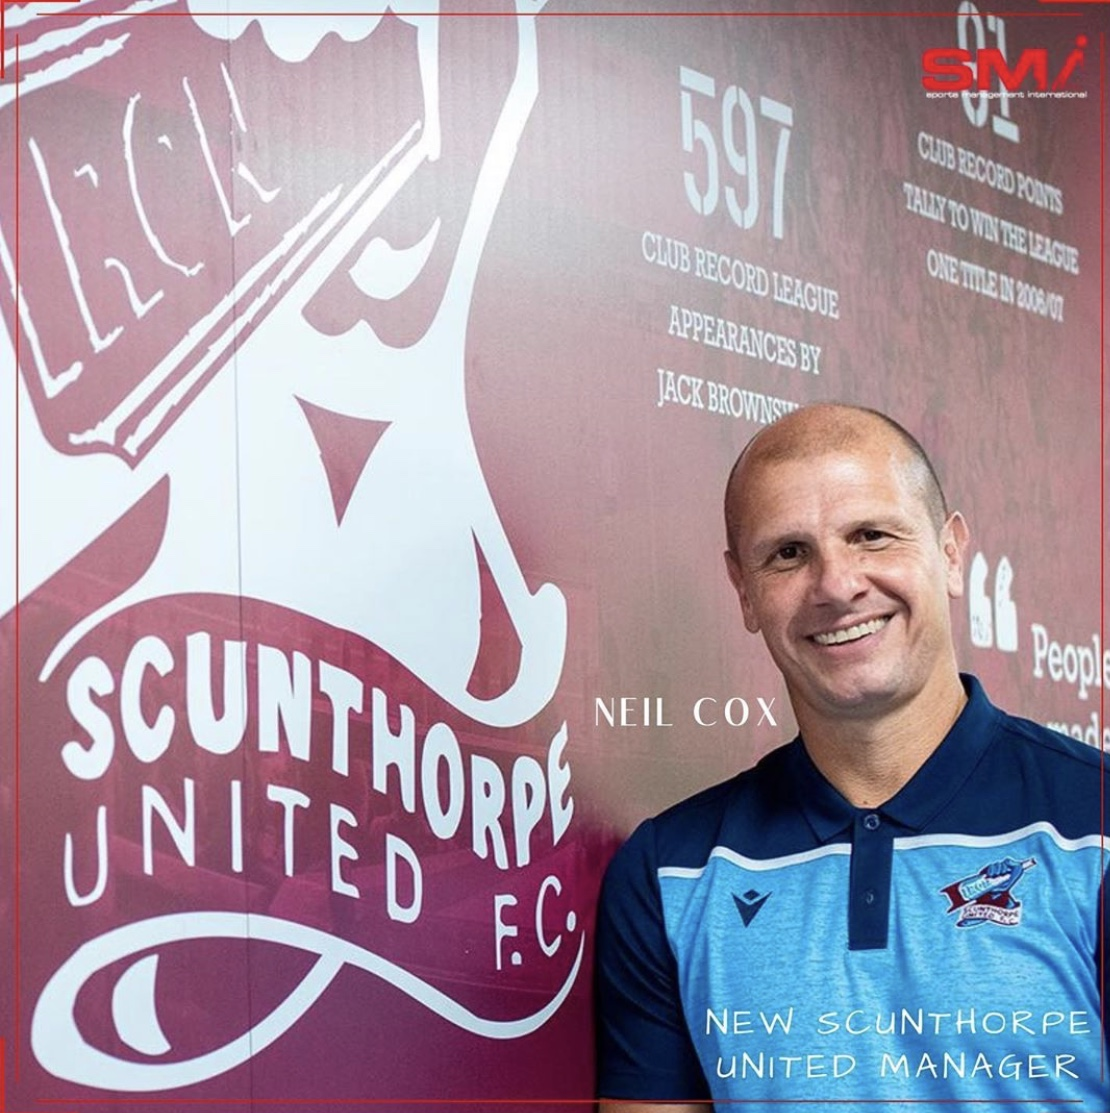 New Scunthorpe United manager Neil Cox